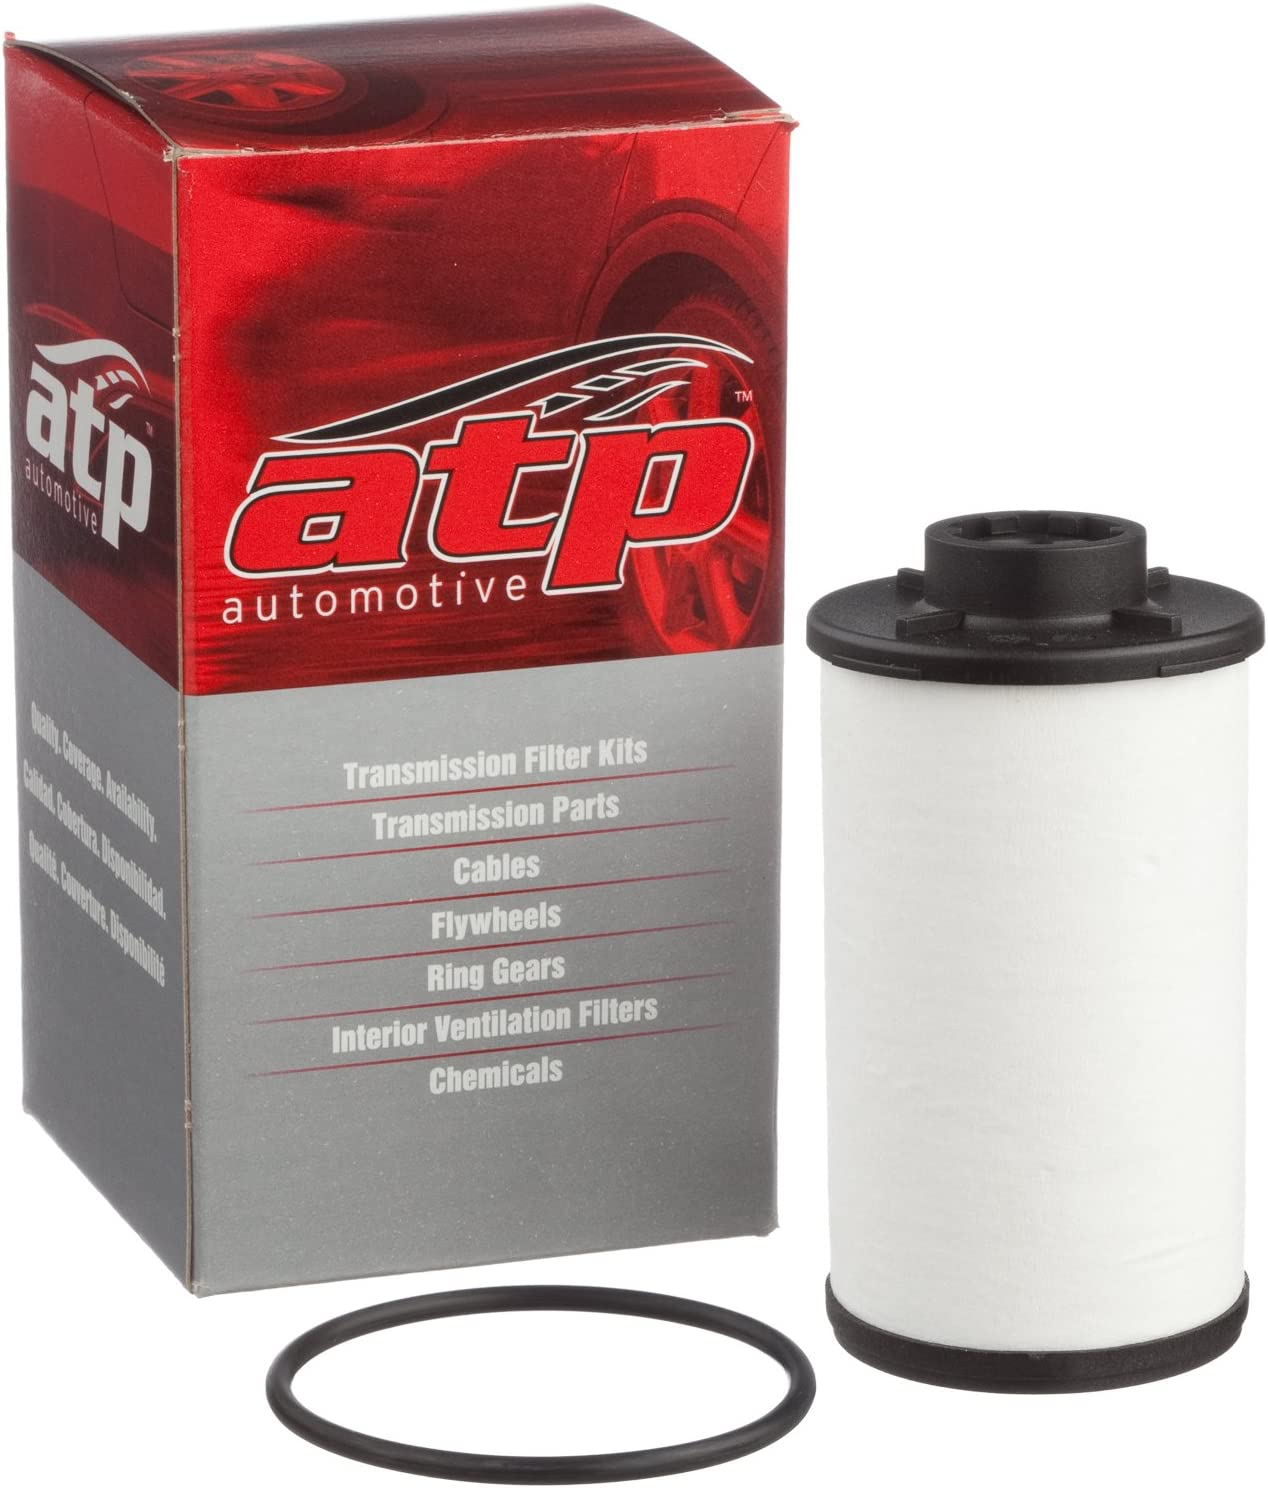 ATP San Jose Mall Popular shop is the lowest price challenge B-455 Automatic Filter Transmission